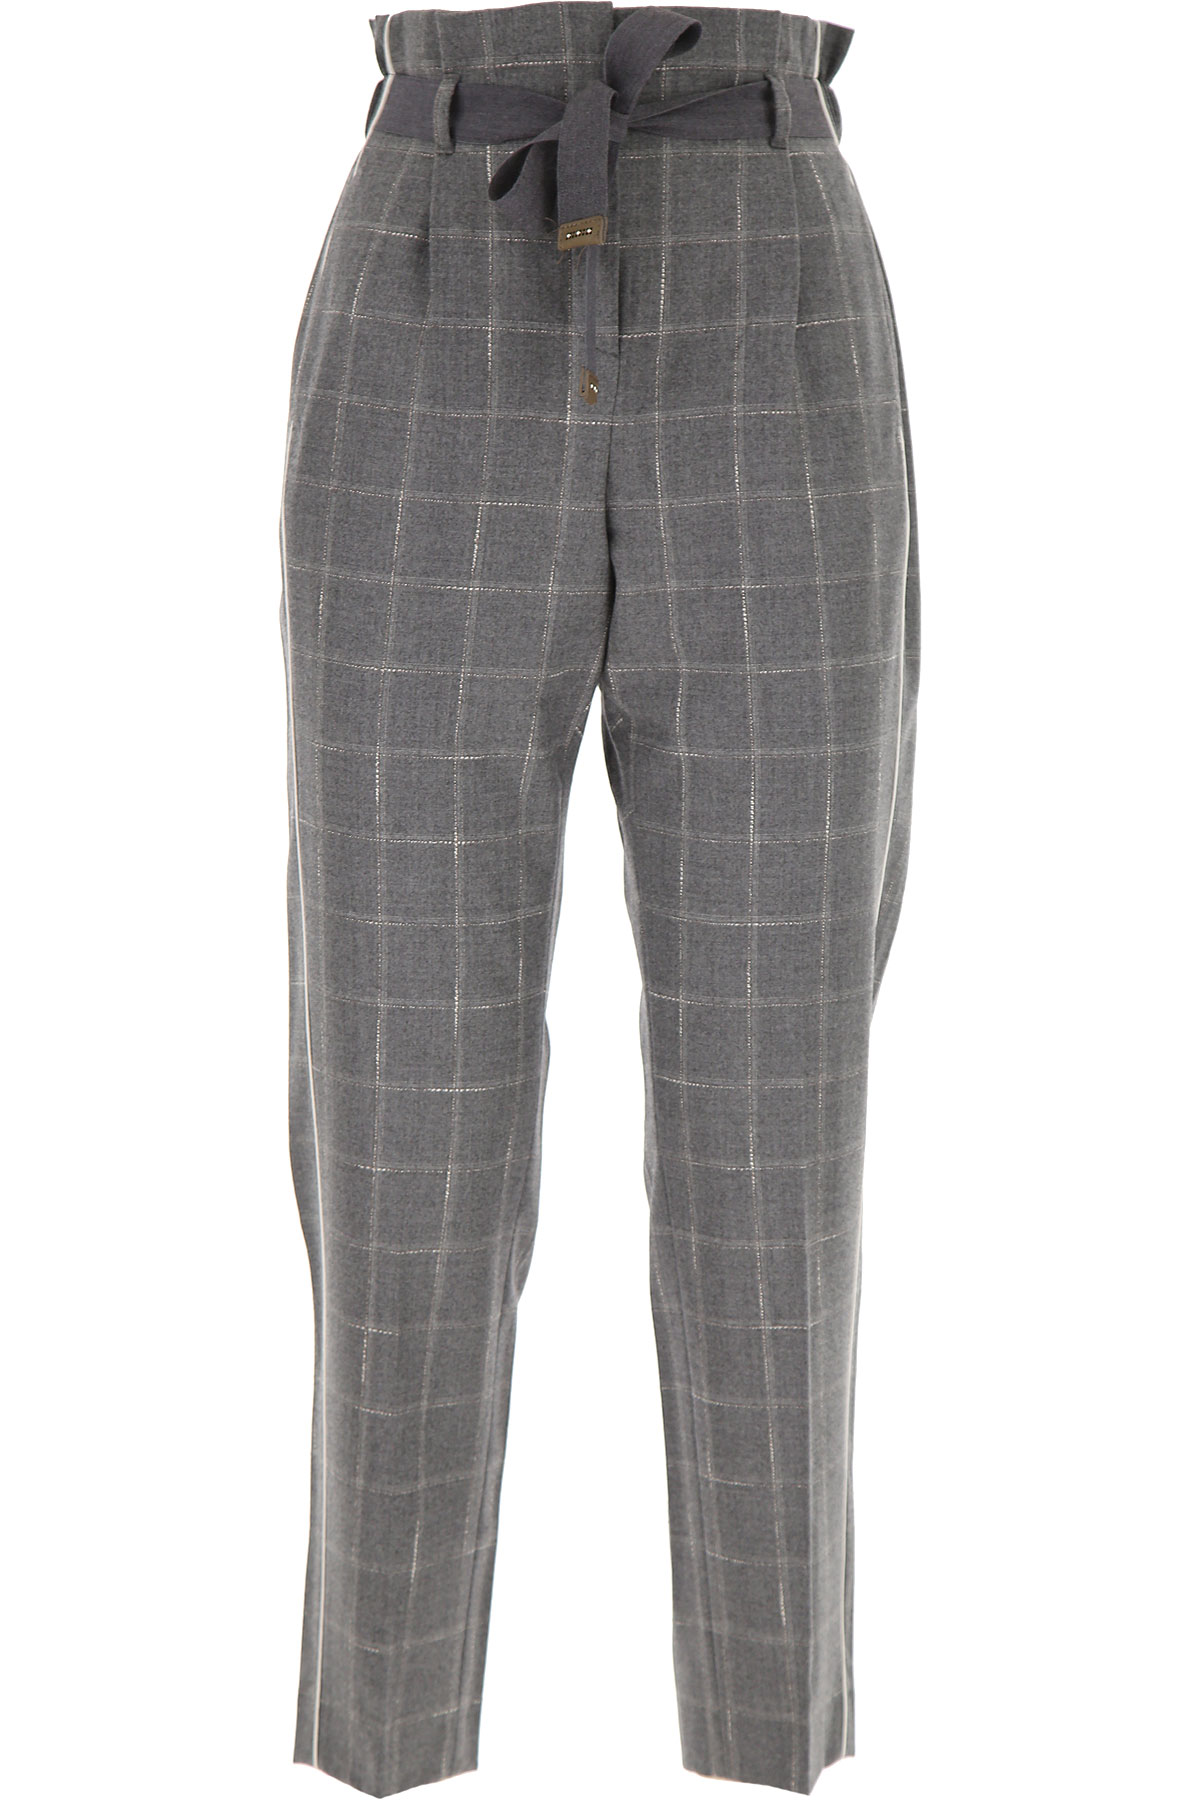 Peserico Pants for Women On Sale, Grey, Wool, 2019, 26 30 32